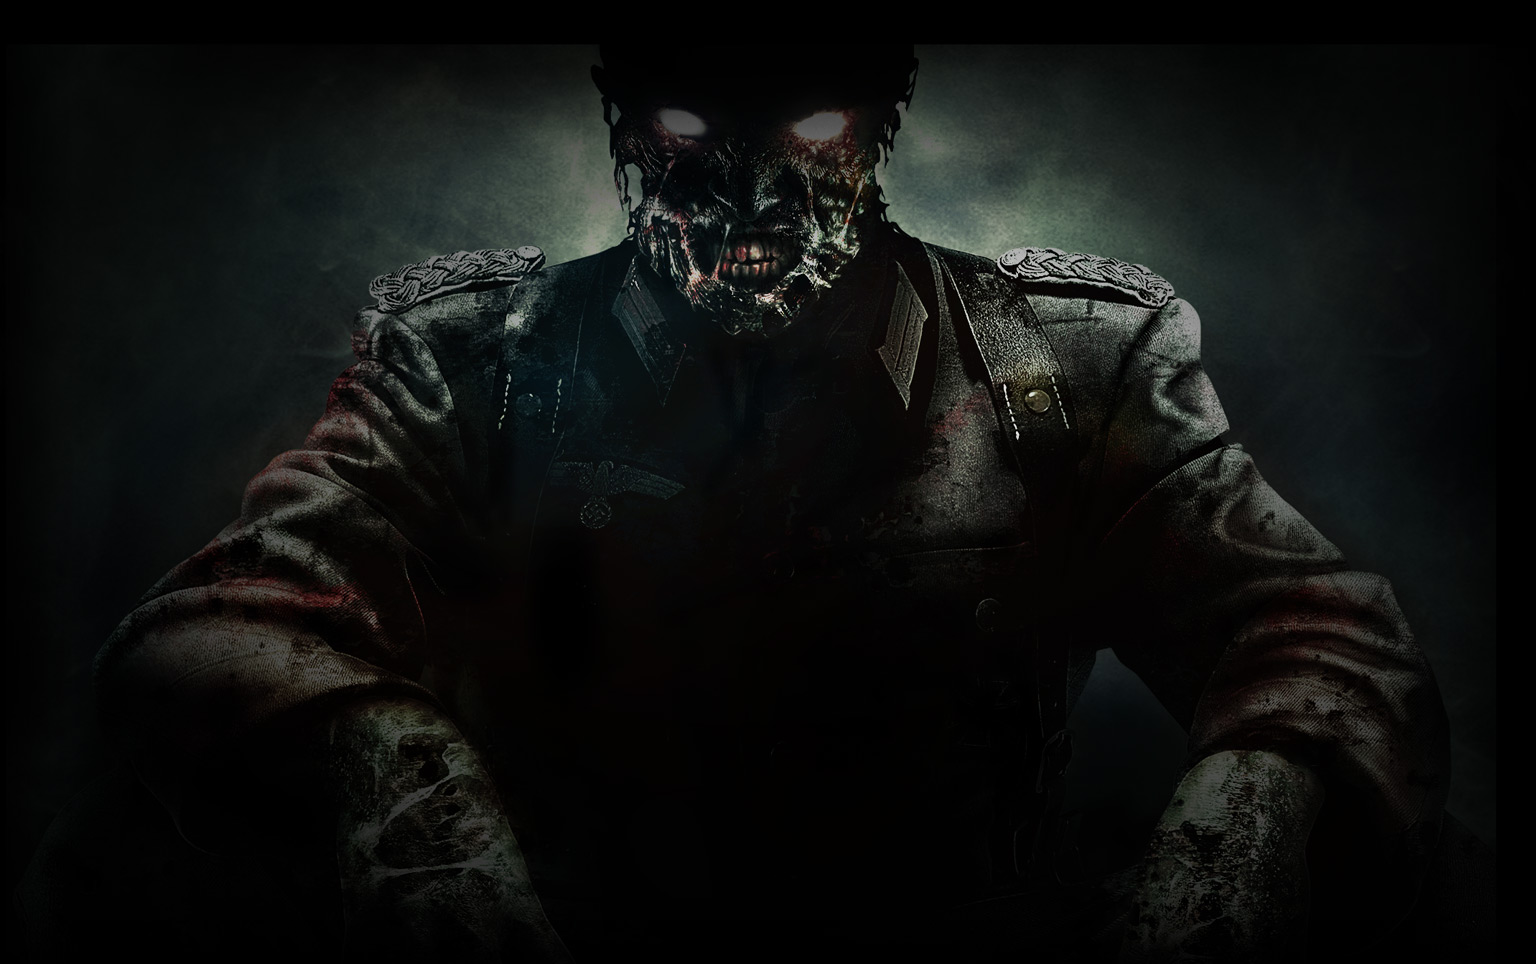 Best Zombies Wallpapers in High Quality, Zombies Backgrounds 1536x964